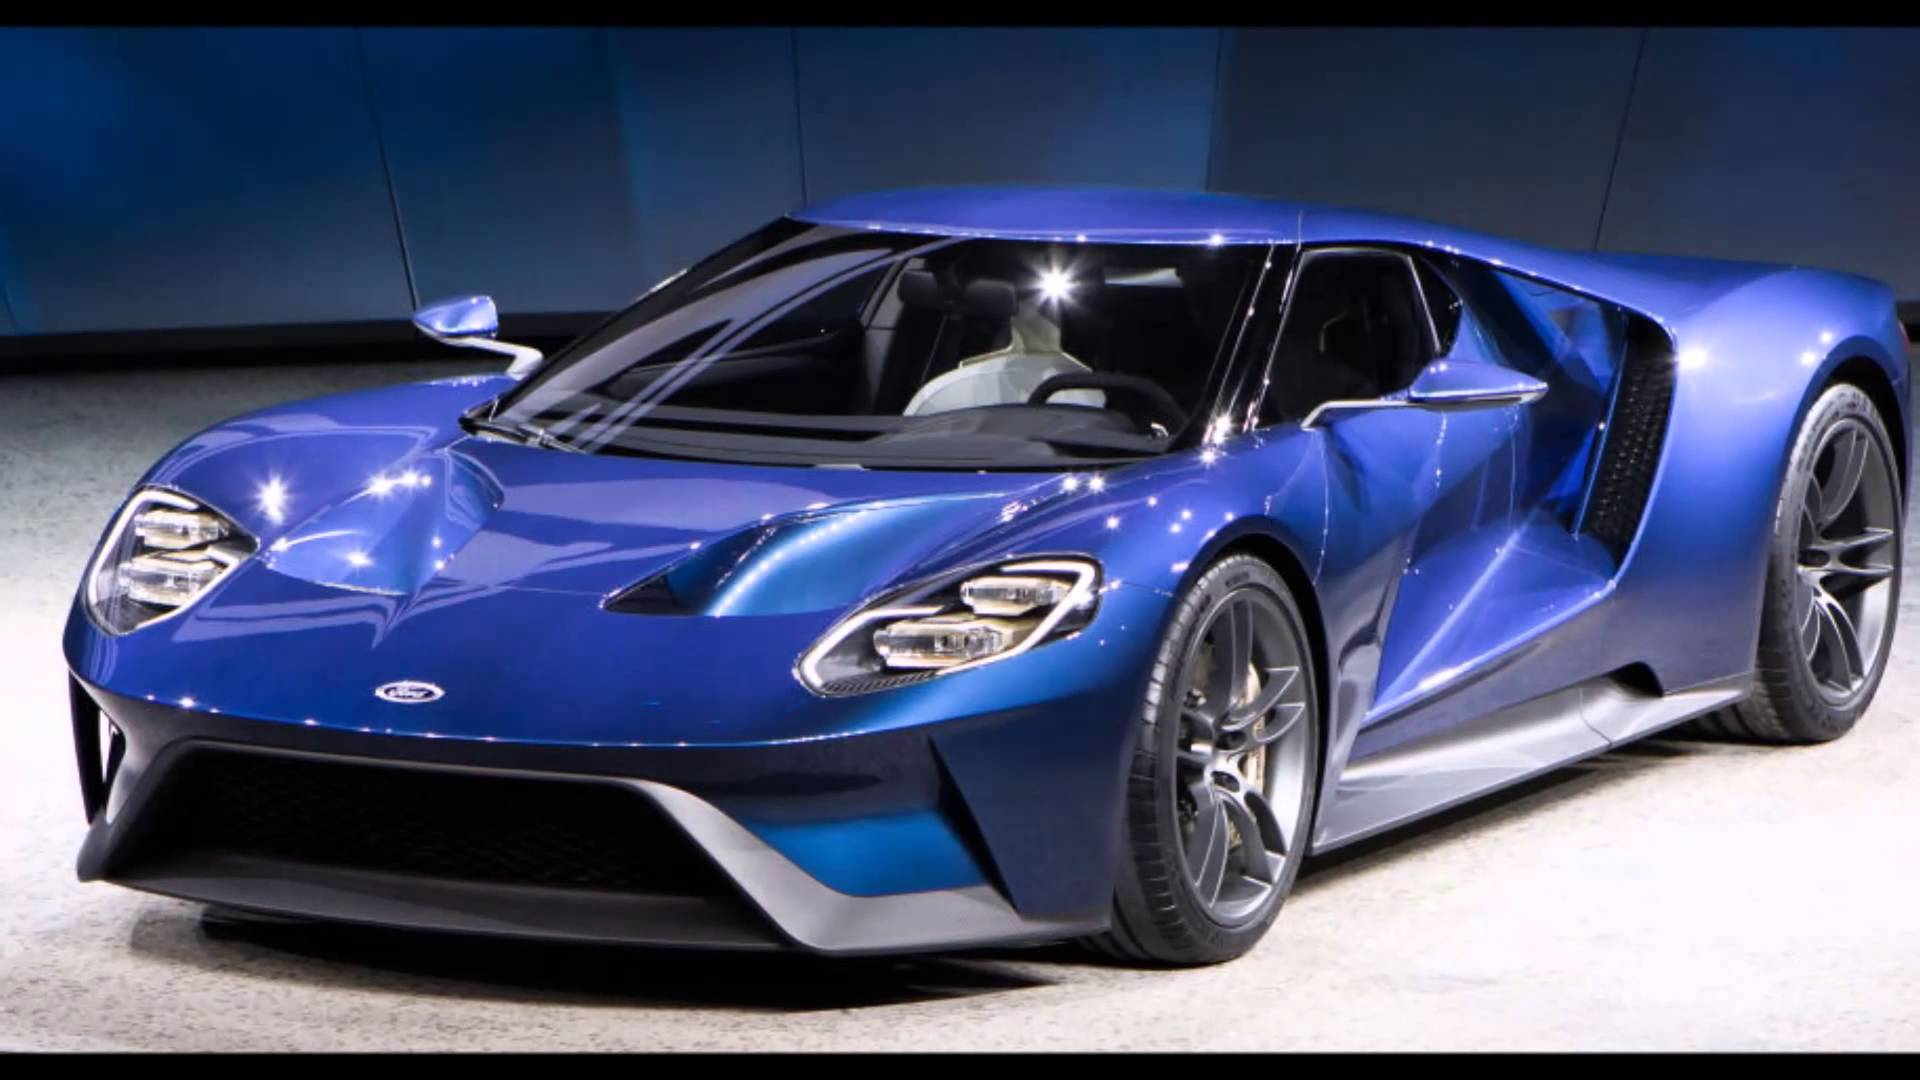 Ford Gt 2017 Wallpaper 2019 Ford Gt Blue 32297 Hd